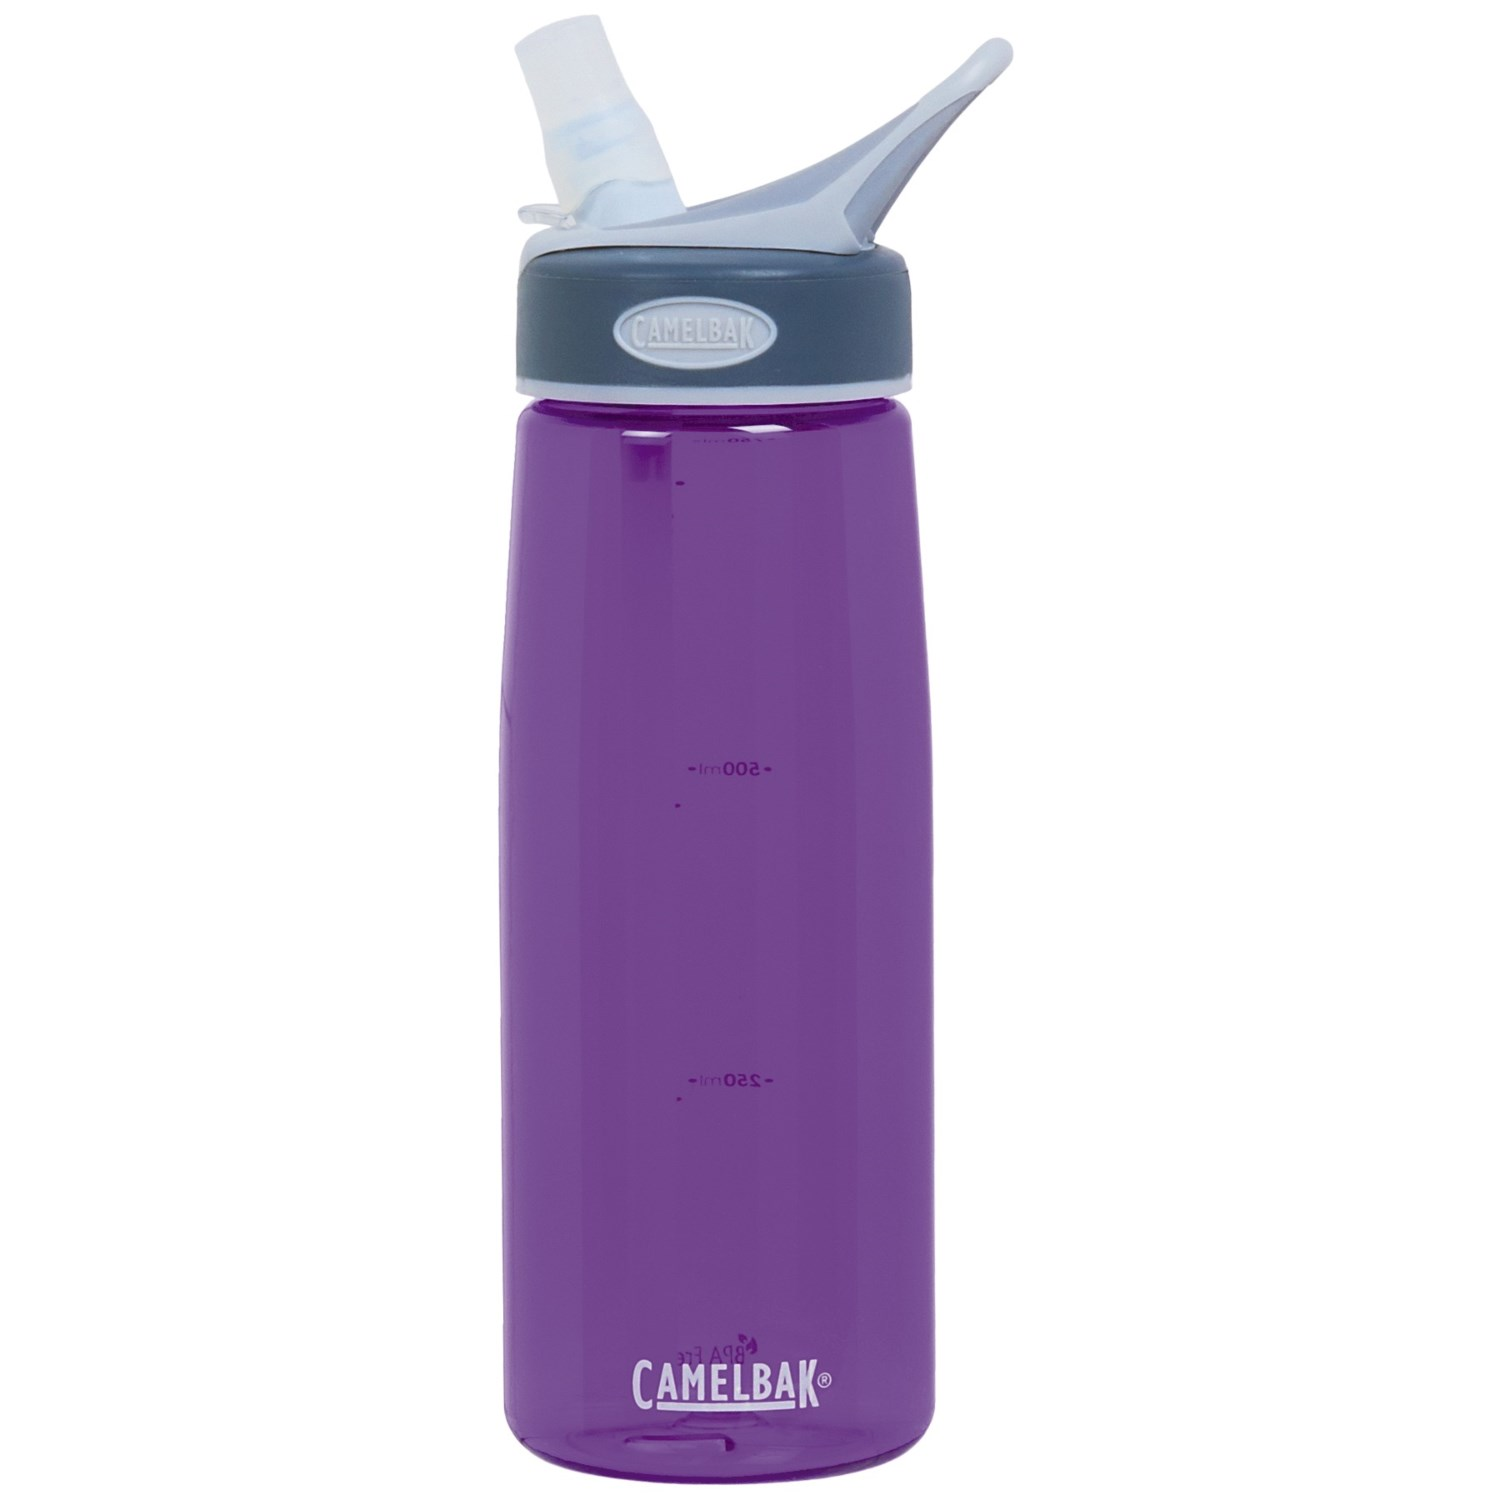 camelbak better bottle water bottle w bite valve 24 oz bpa free purple 75 liter. Black Bedroom Furniture Sets. Home Design Ideas